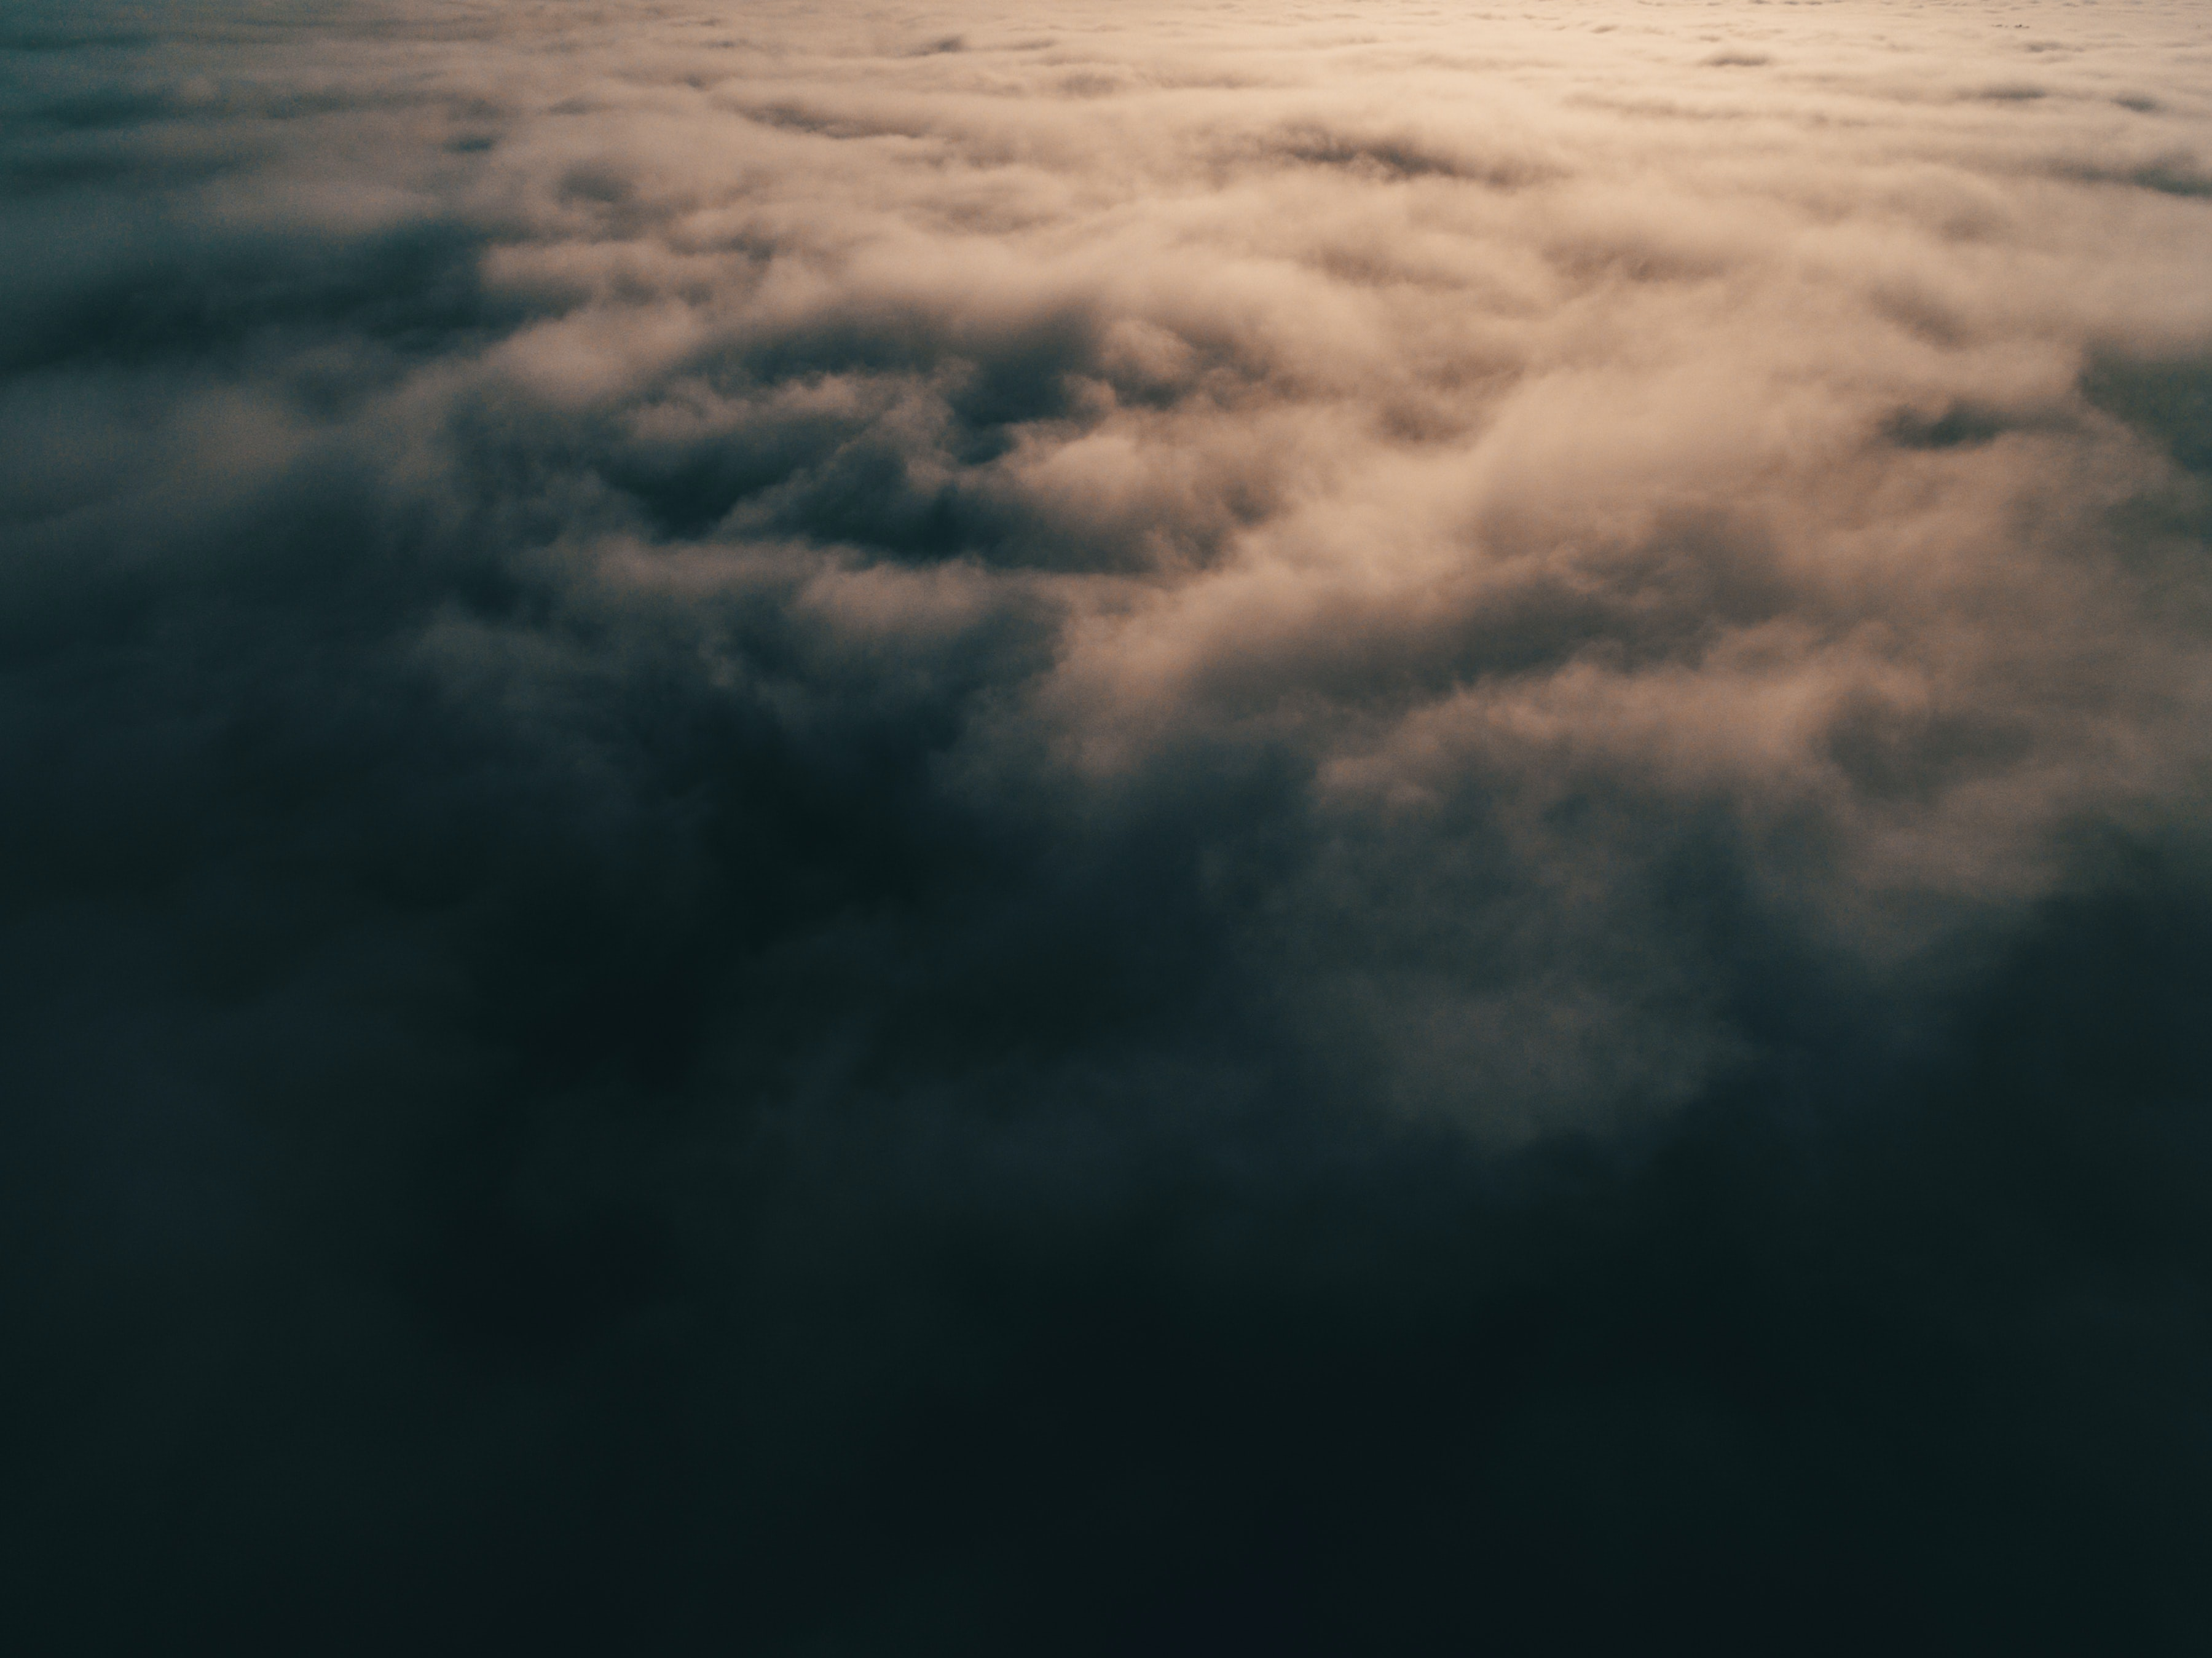 Top of grey clouds with sunlight streaming on them